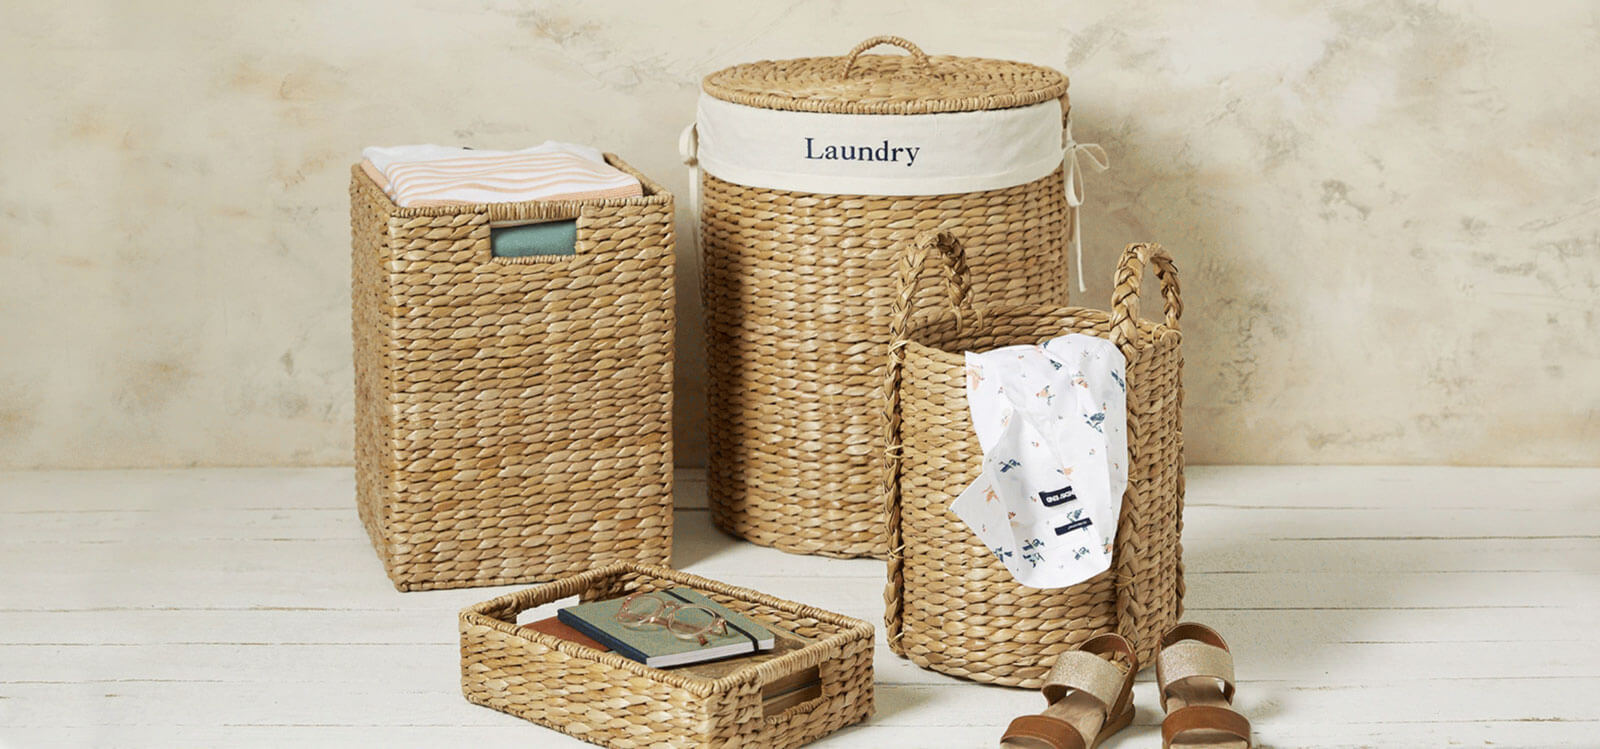 6 Ways to Make Doing Laundry Easy This Spring